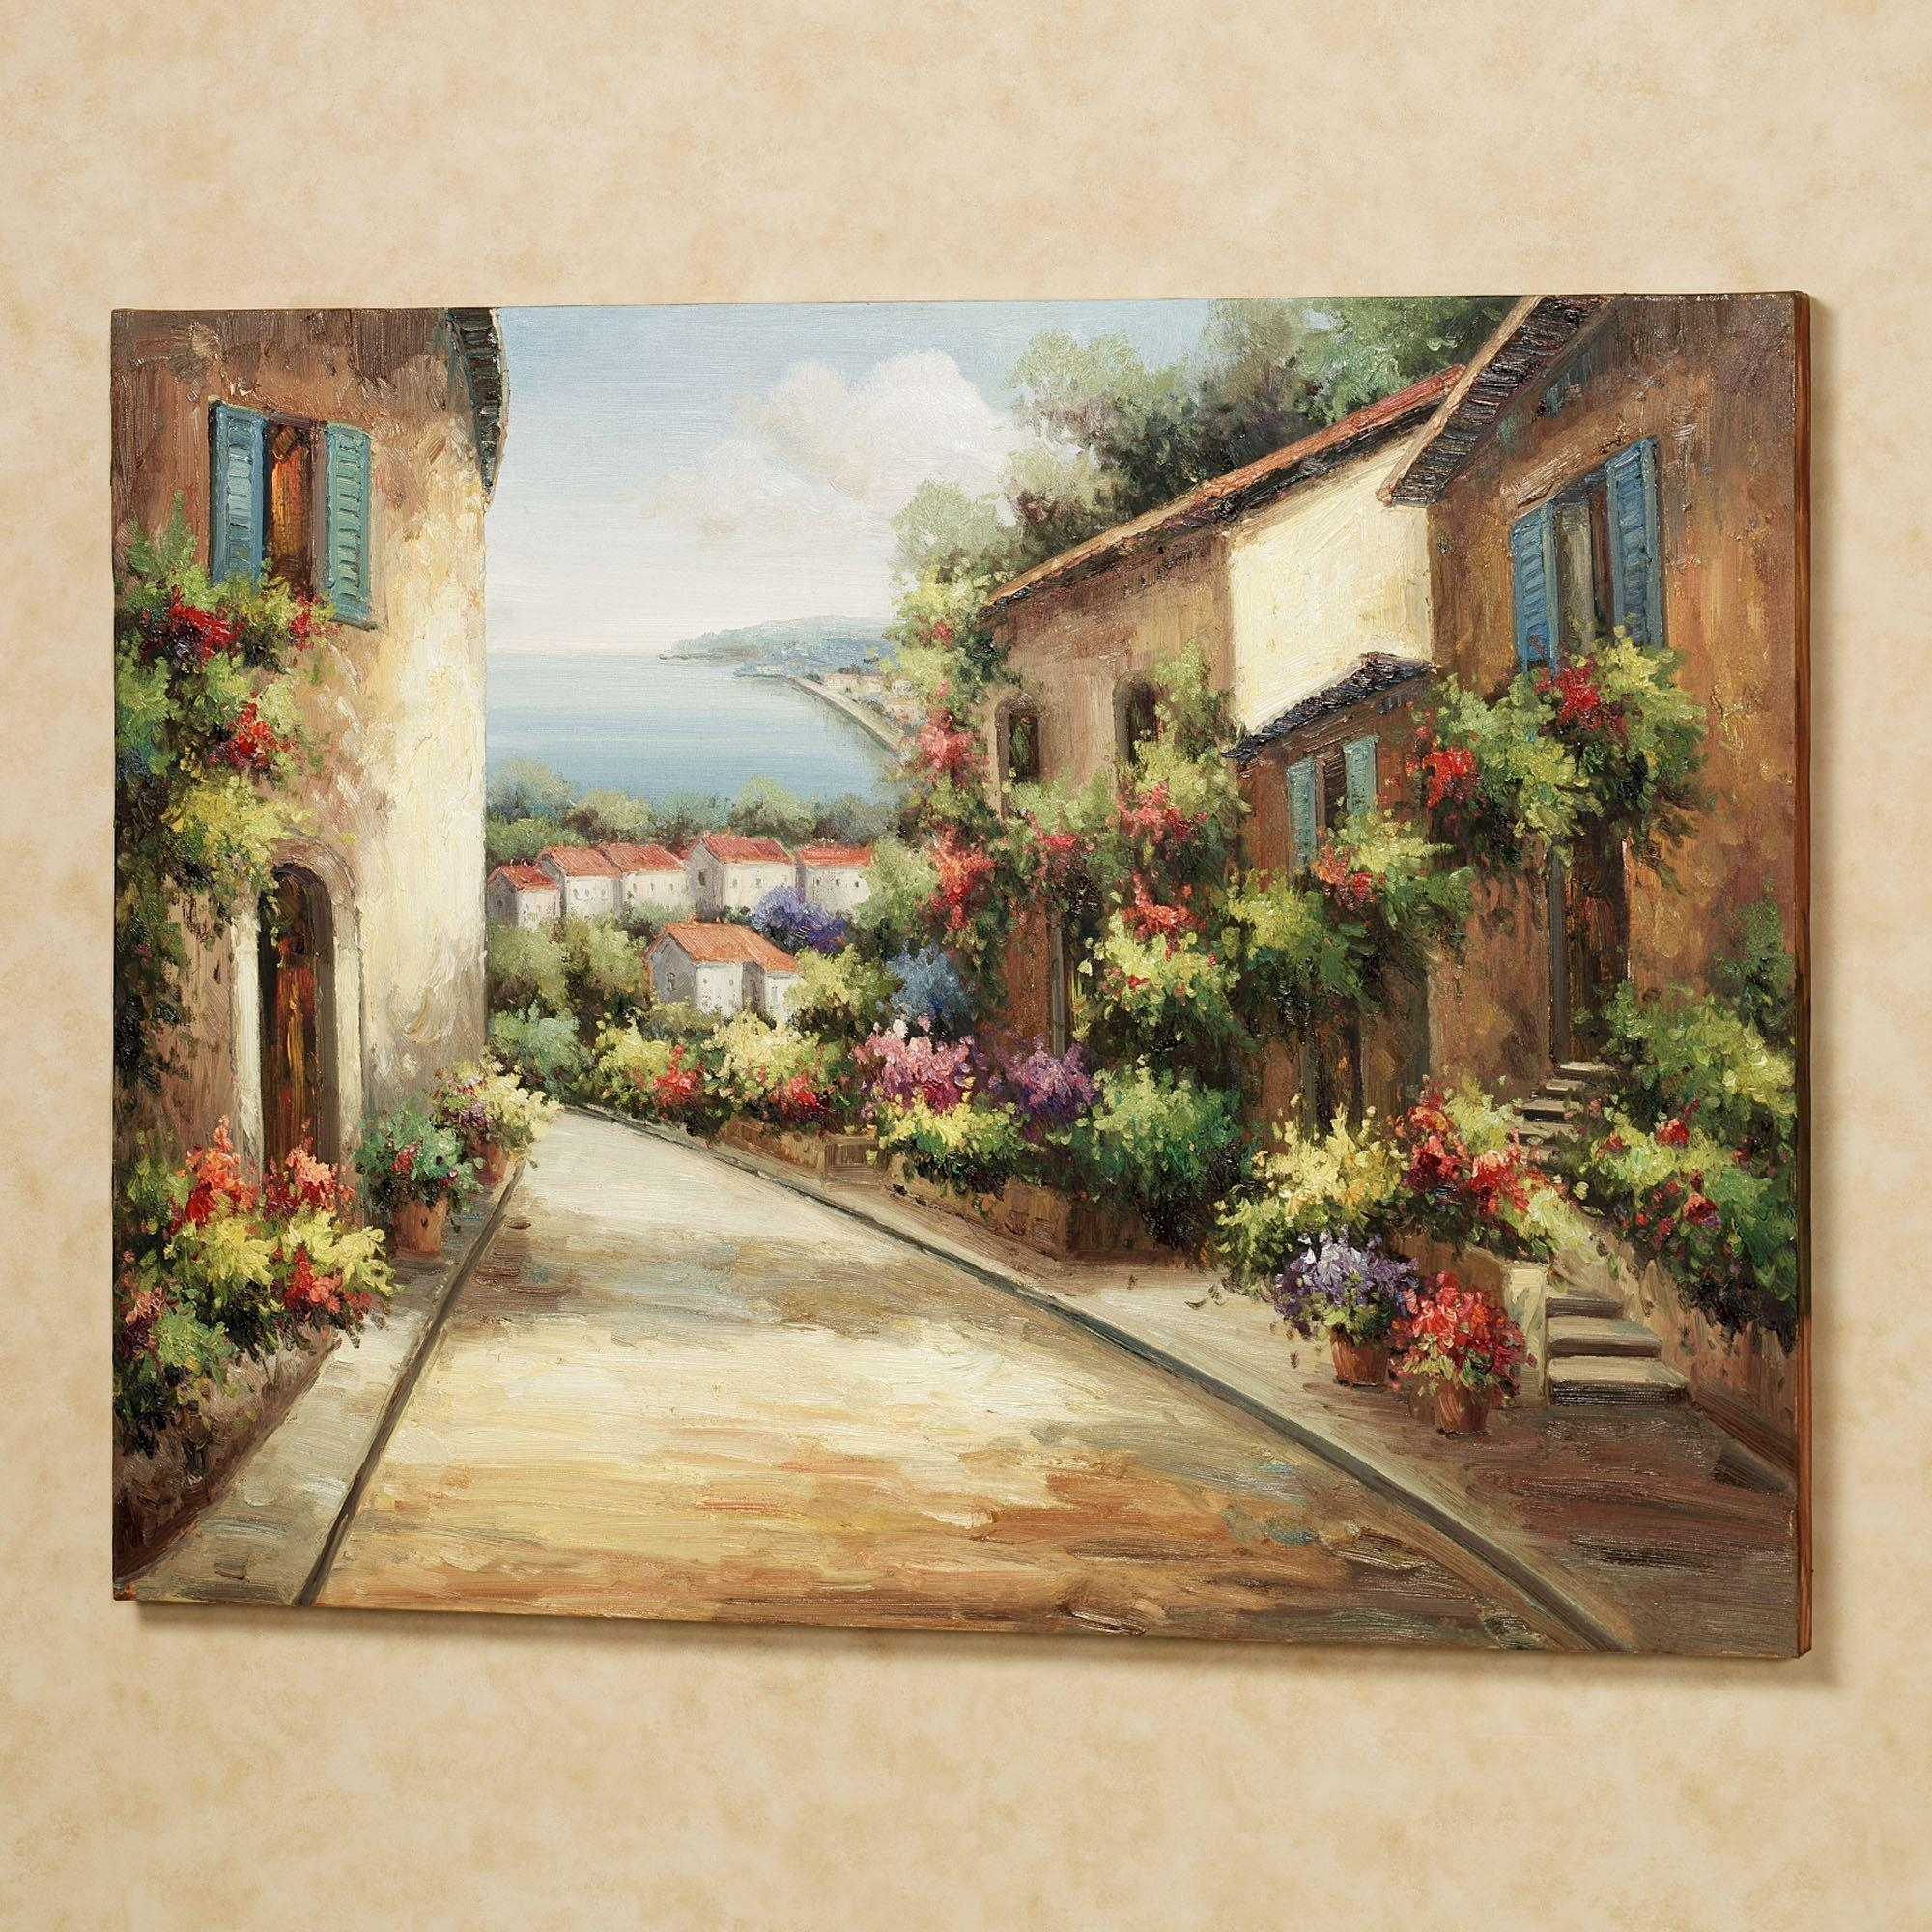 Streets Of Tuscany Canvas Wall Art In Tuscany Wall Art (Image 7 of 20)